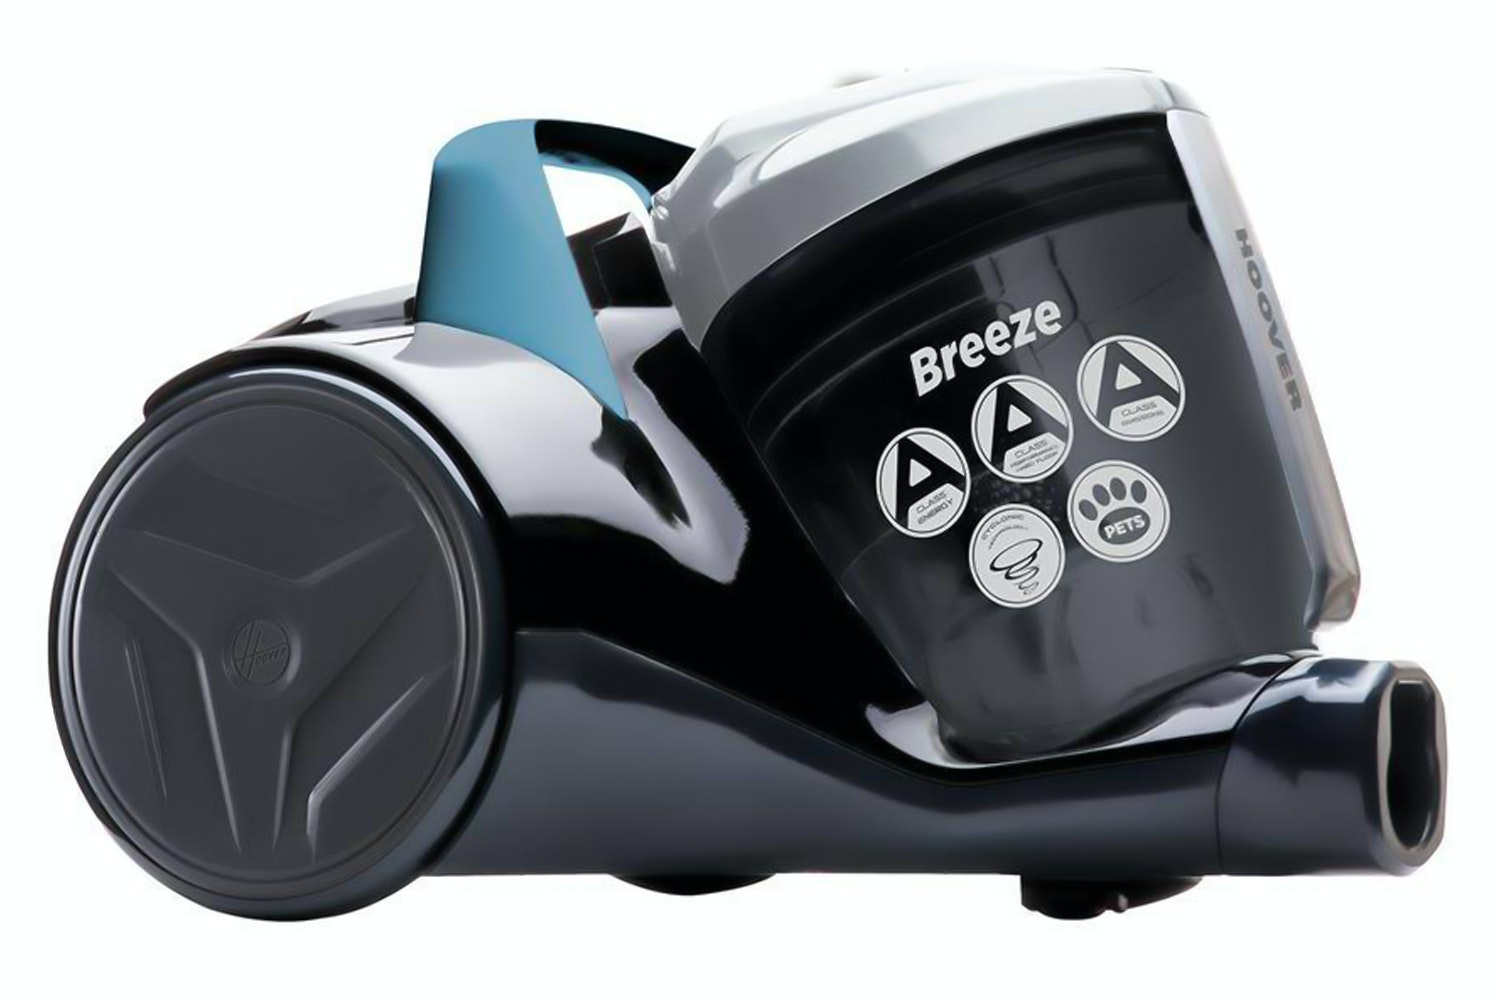 Hoover Breeze Pets Bagless Vacuum Cleaner | Black & Grey